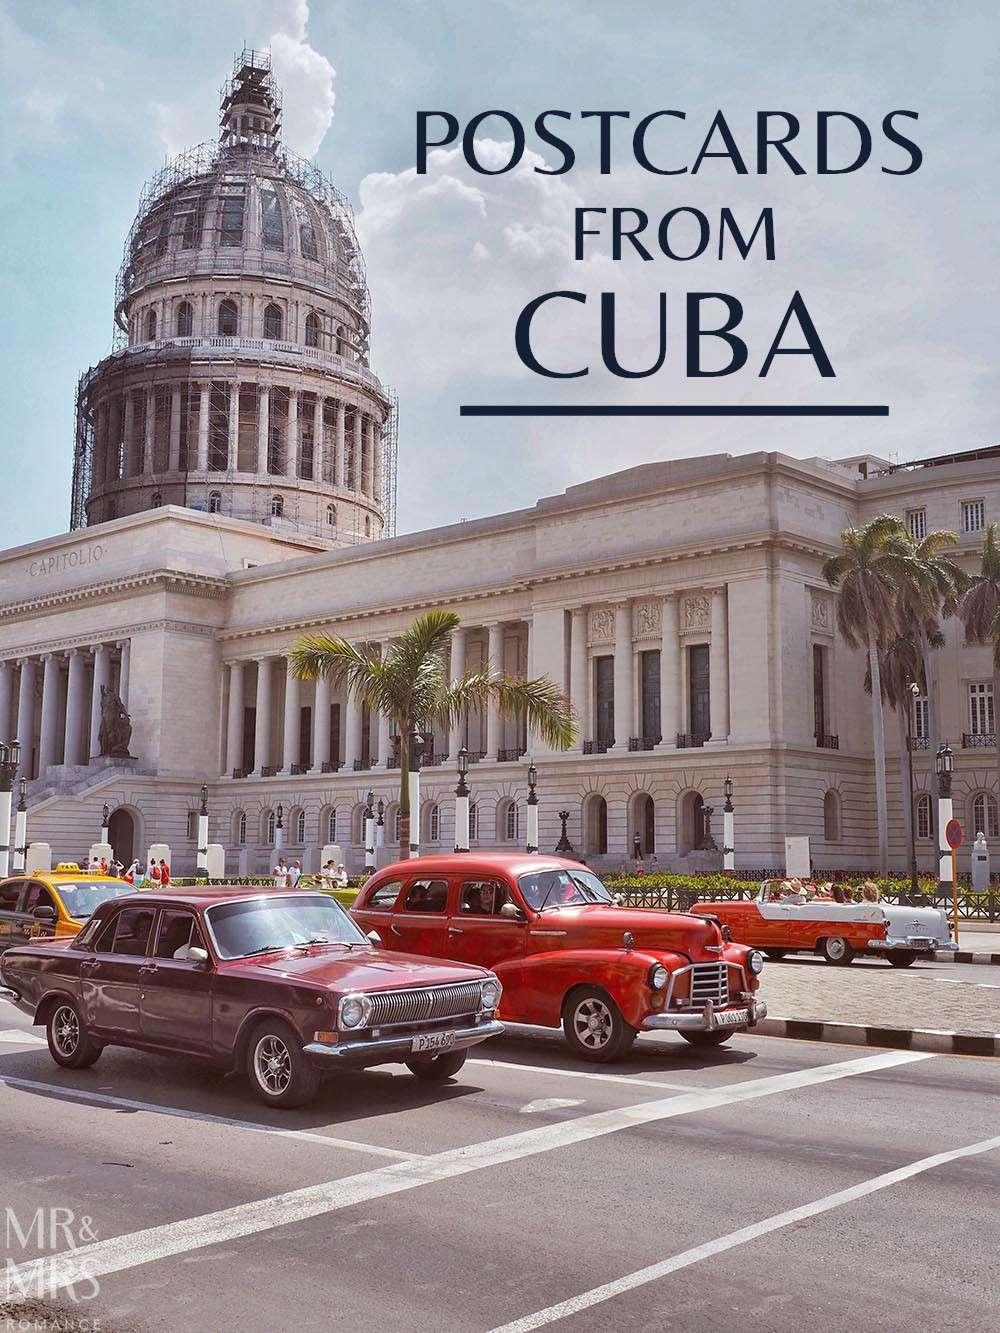 Postcards from Cuba - tips for photography in Cuba